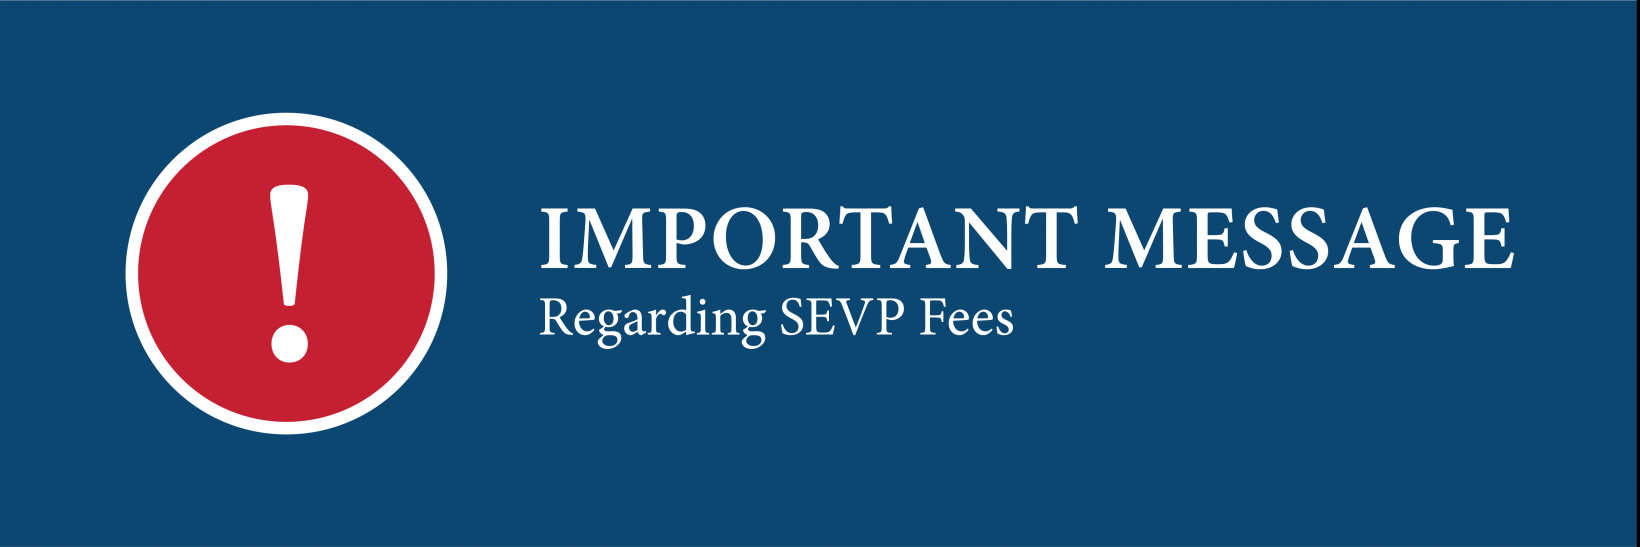 Important Message Regarding SEVP Fees